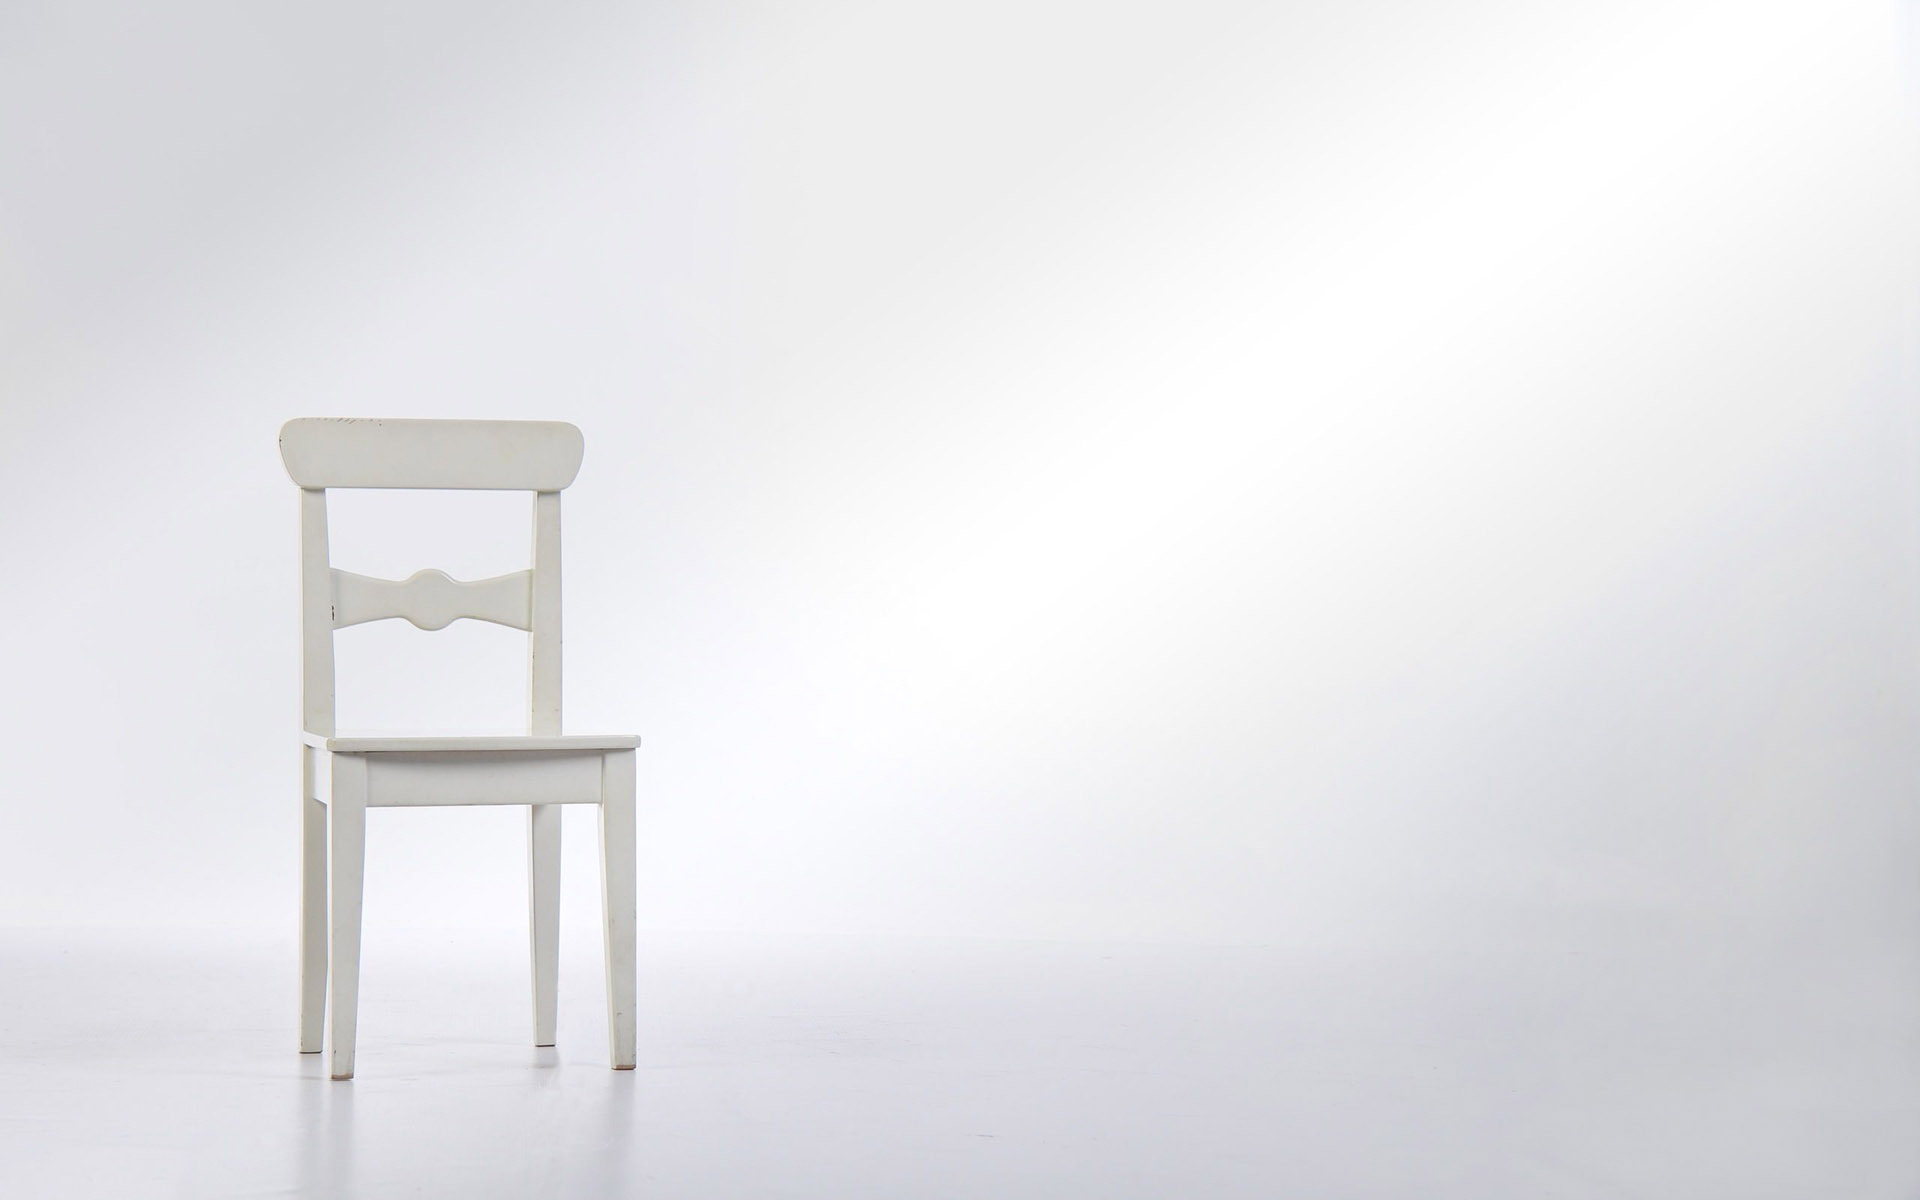 white chair desktop wallpaper 50281